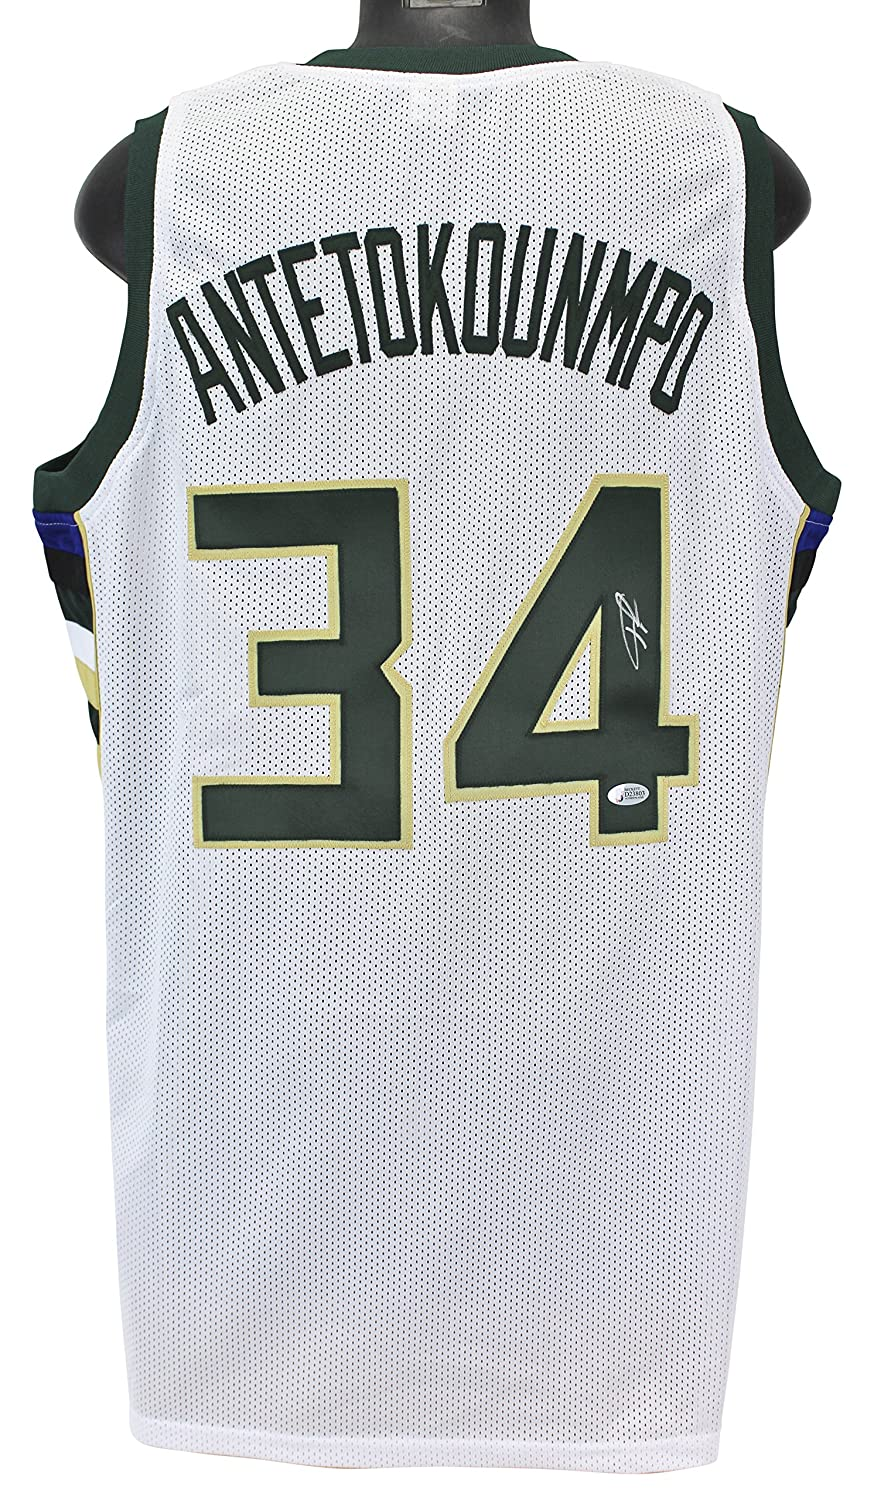 37c42a3dae3 ... wholesale amazon bucks giannis antetokounmpo authentic signed white  jersey autographed bas sports collectibles 51c84 ac546